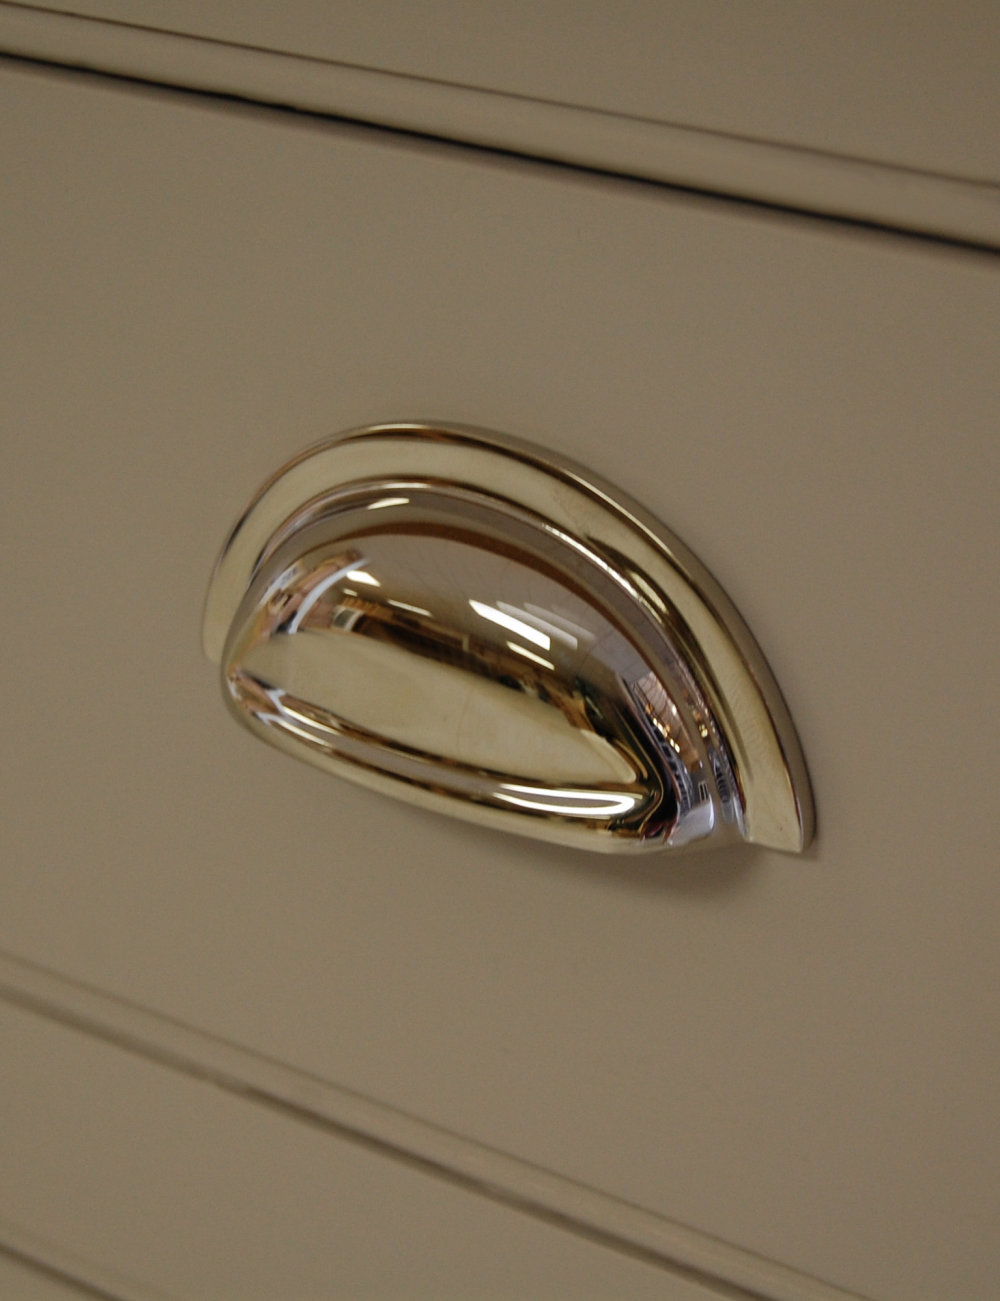 polished-chrome-cup-handle-in-bespoke-kitchen.jpg